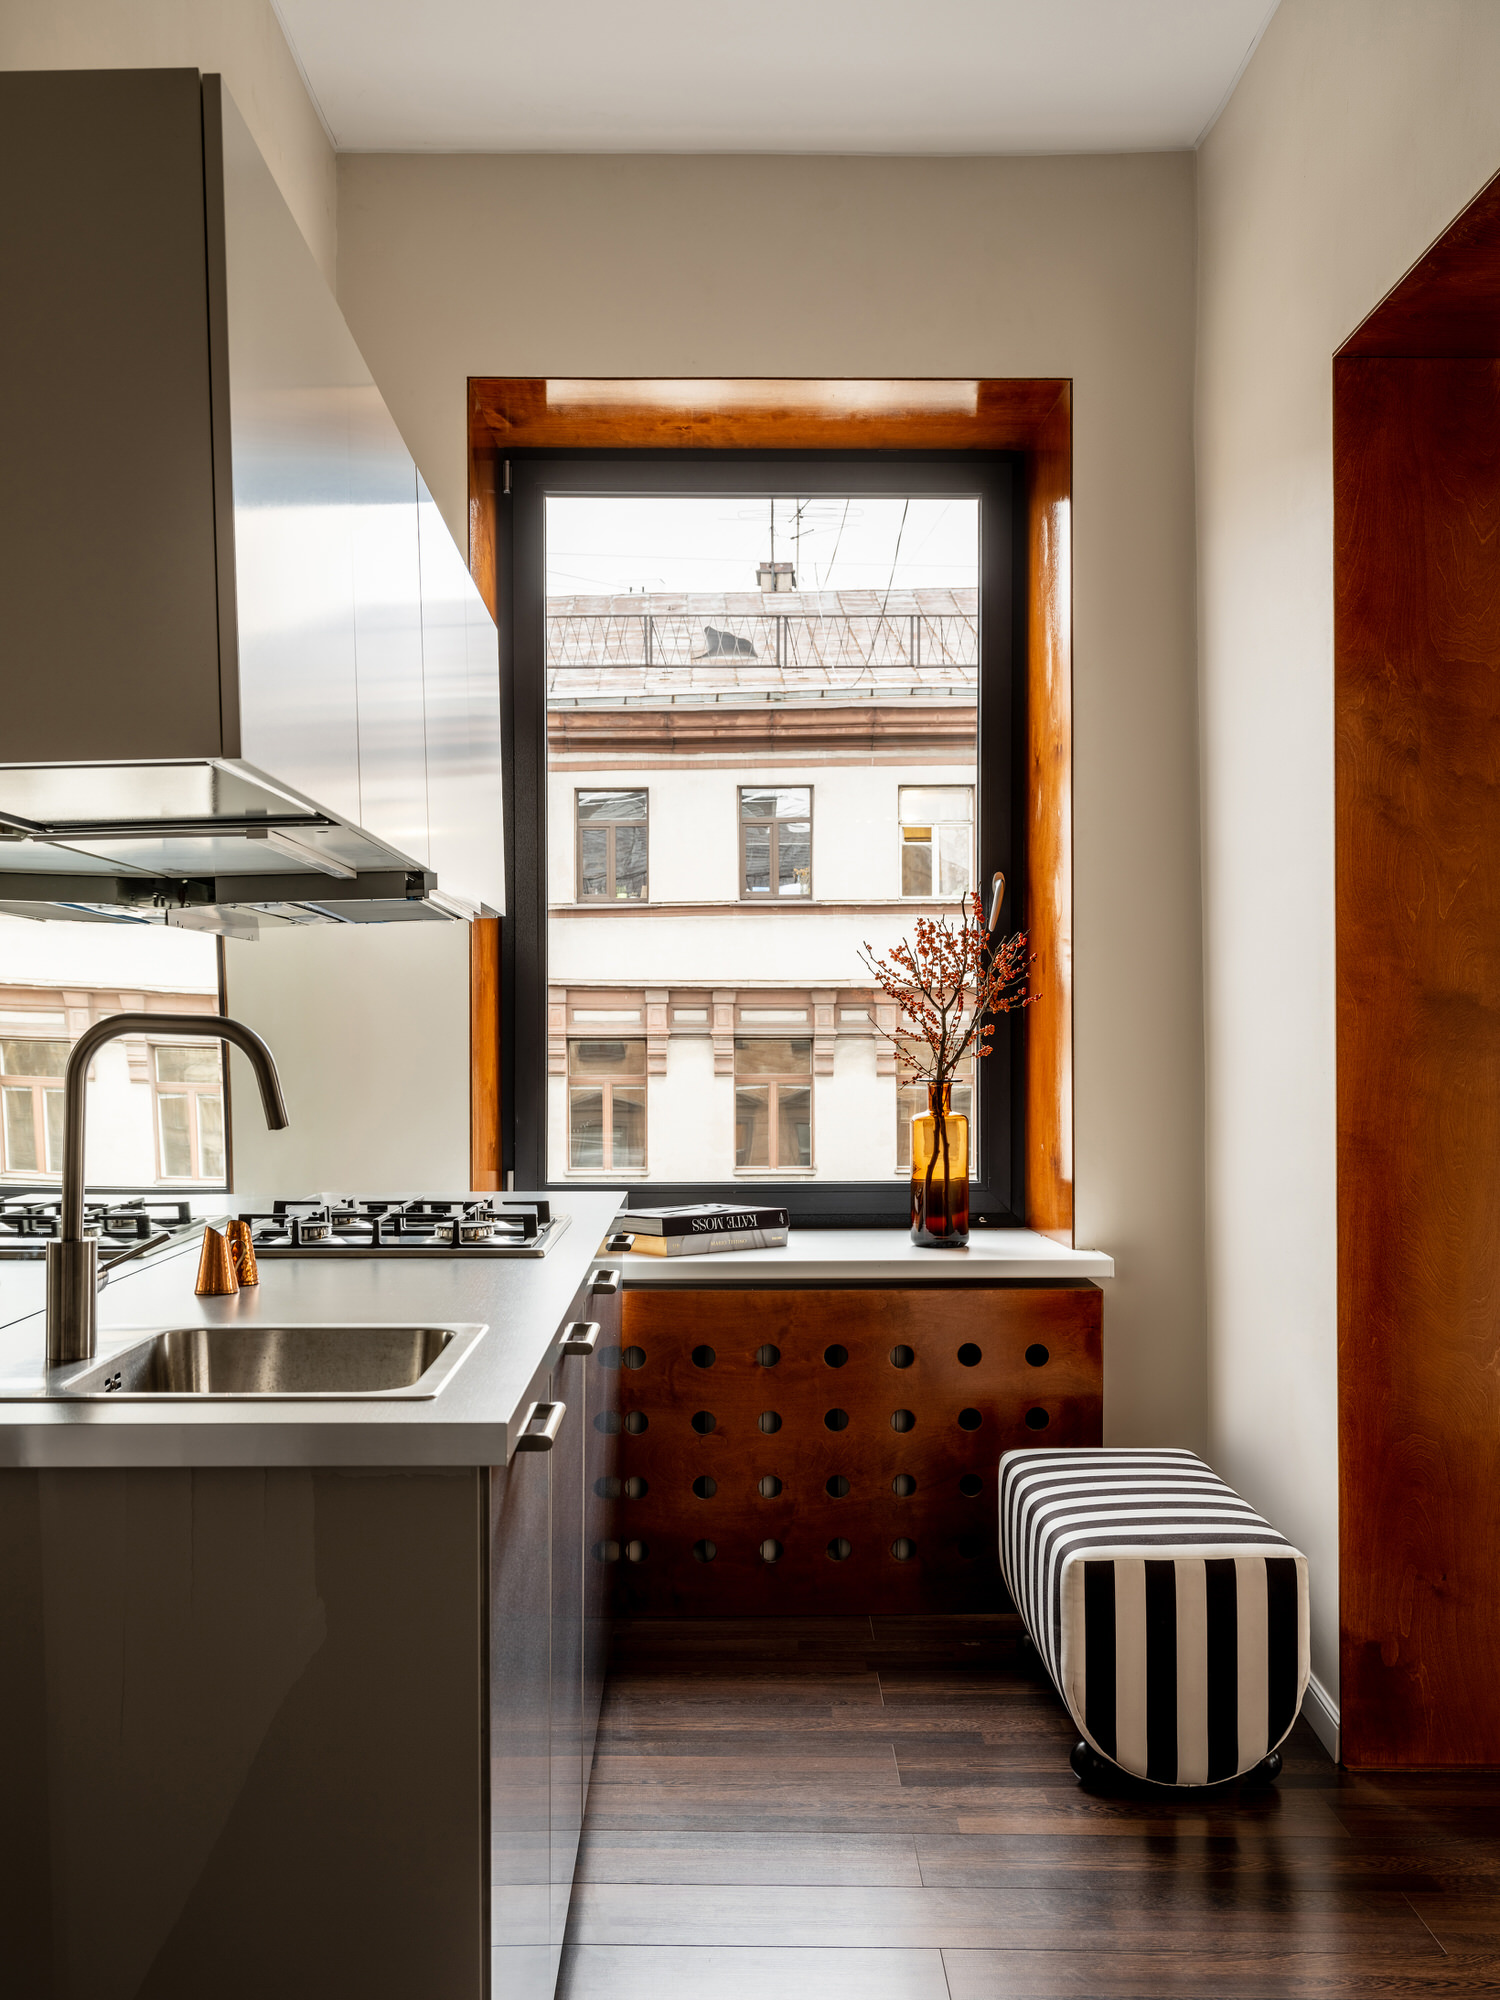 Historical Apartment Renovation in Saint Petersburg, Russia by Tim Veresnovsky, Photo Mikhail Loskutov | Yellowtrace